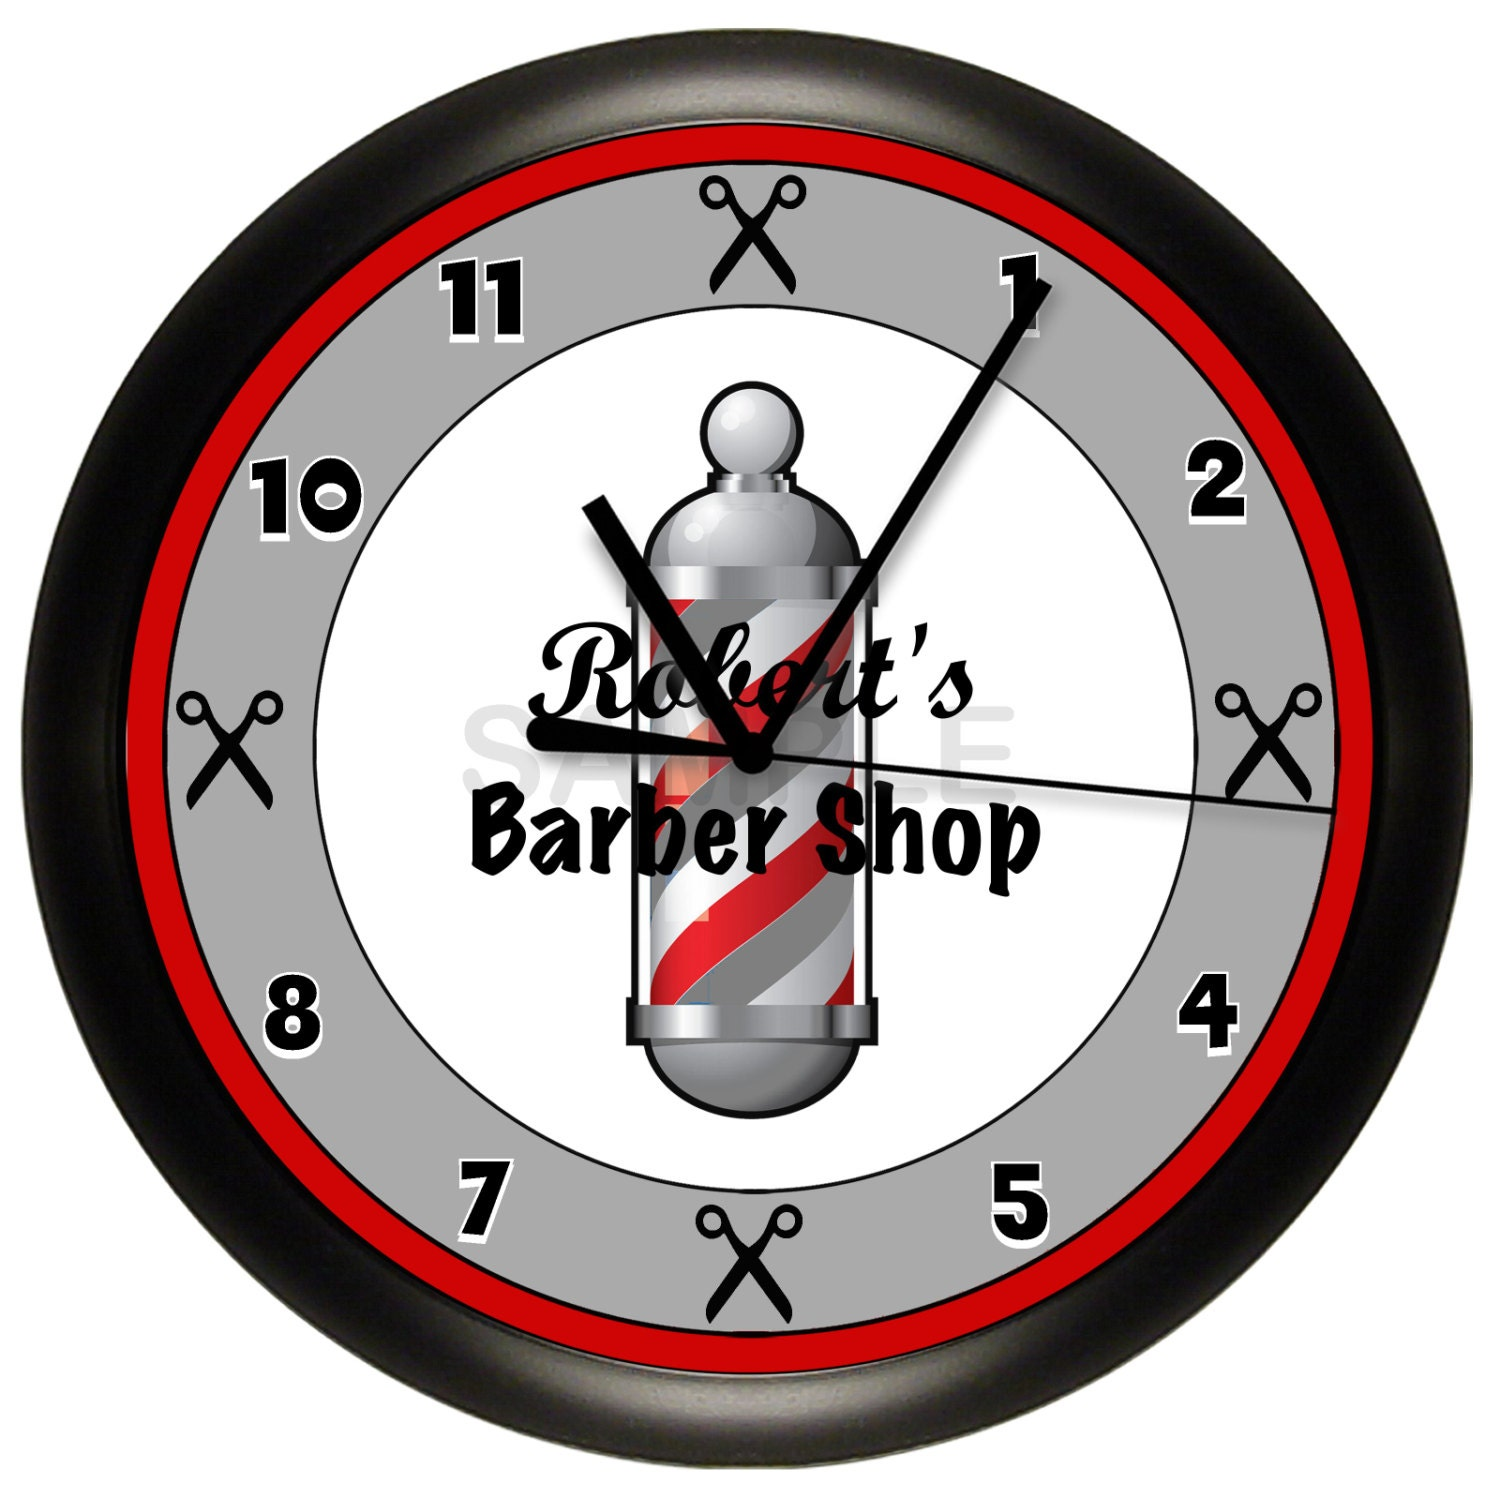 barber shop custom wall clock. Black Bedroom Furniture Sets. Home Design Ideas